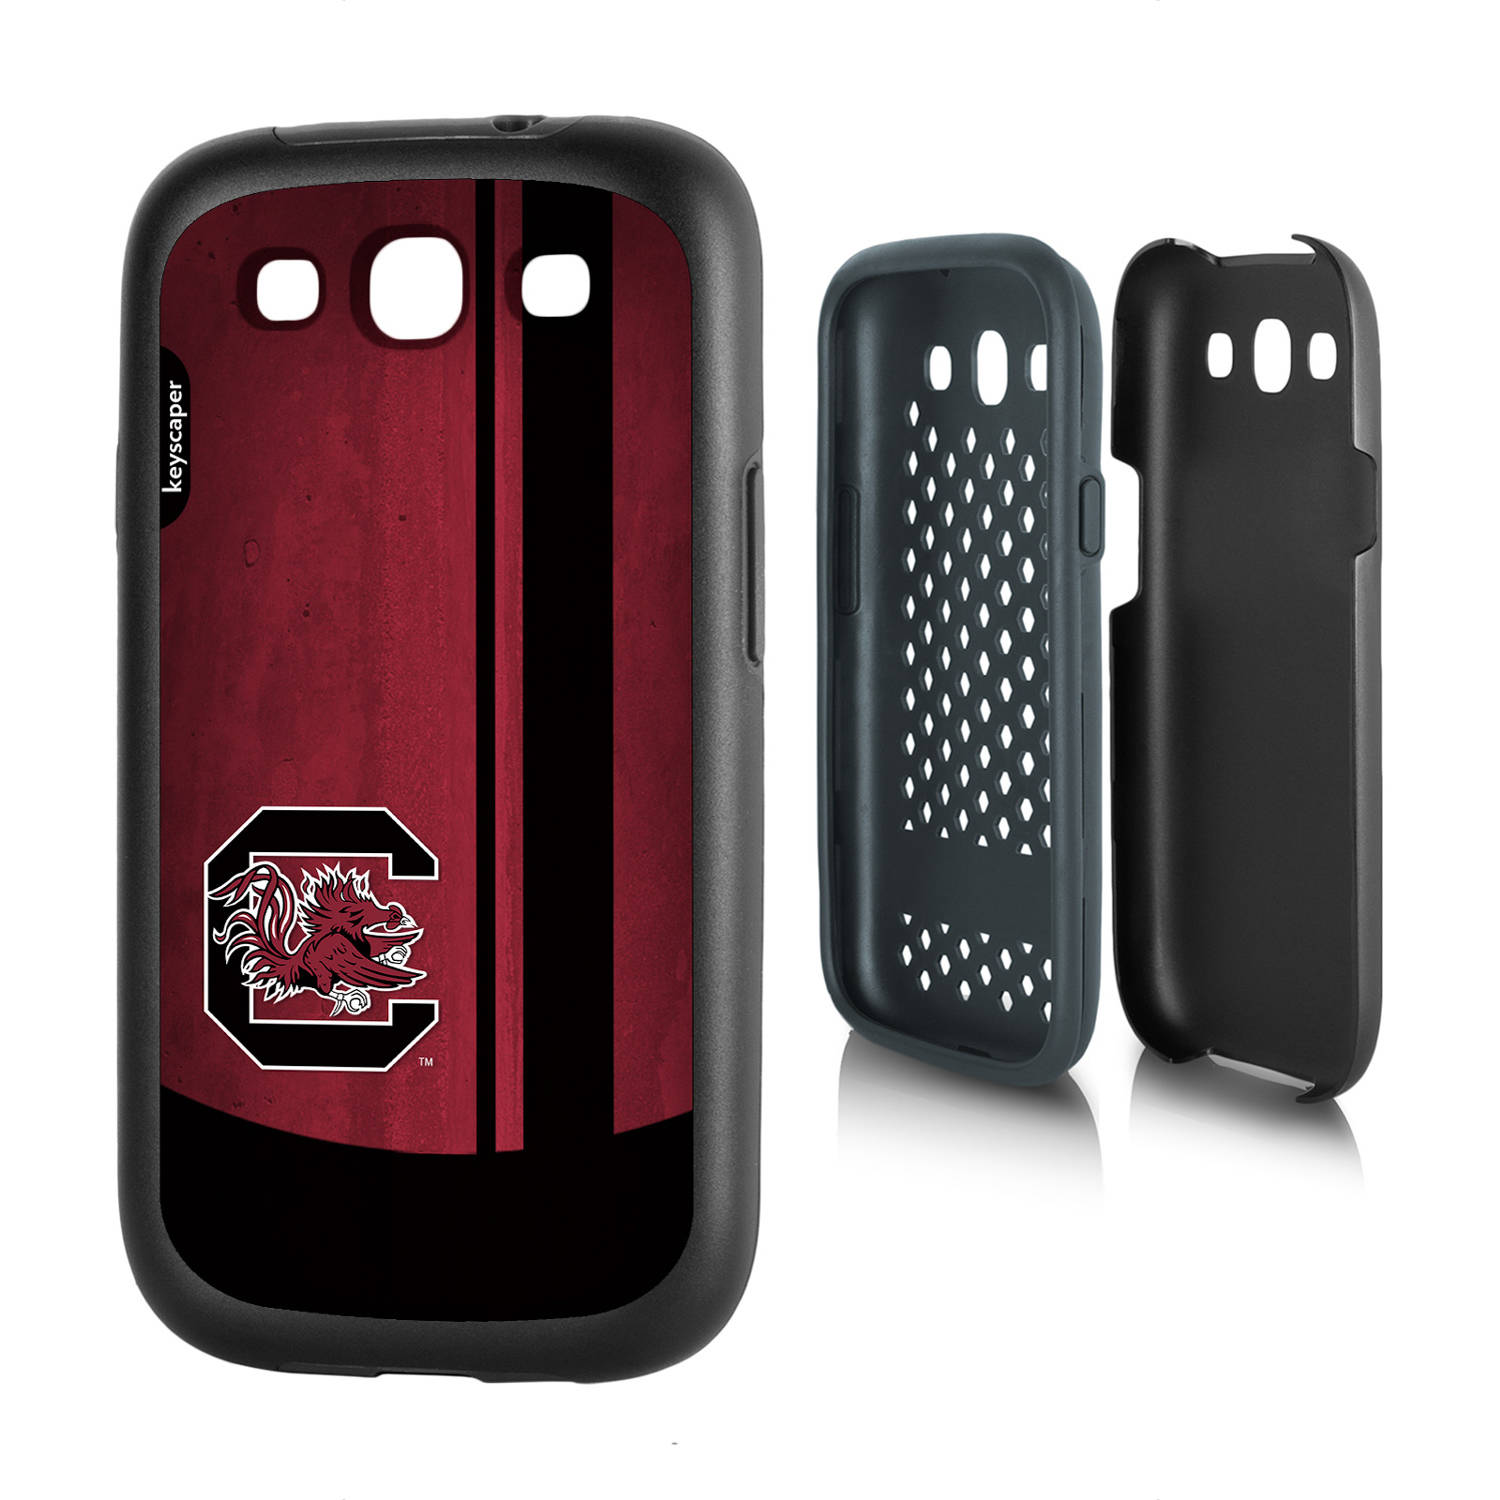 South Carolina Fighting Gamecocks Galaxy S3 Rugged Case